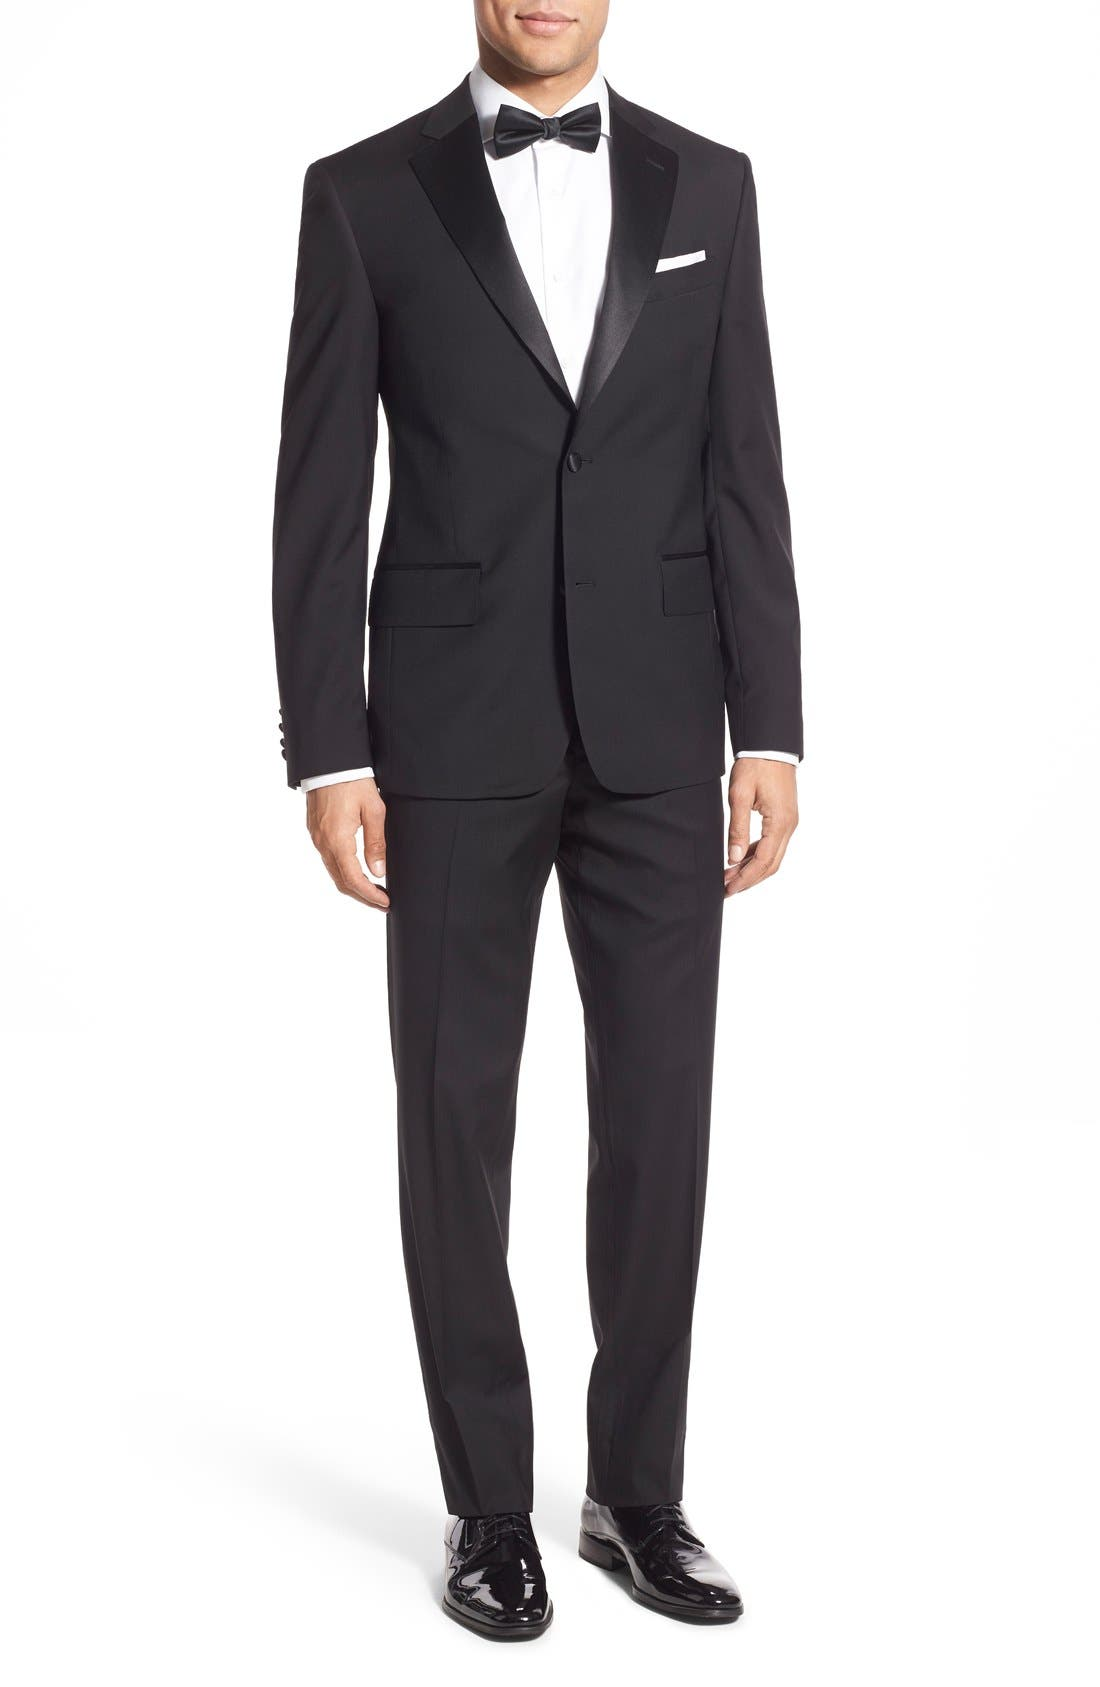 Tuxedos for Wedding